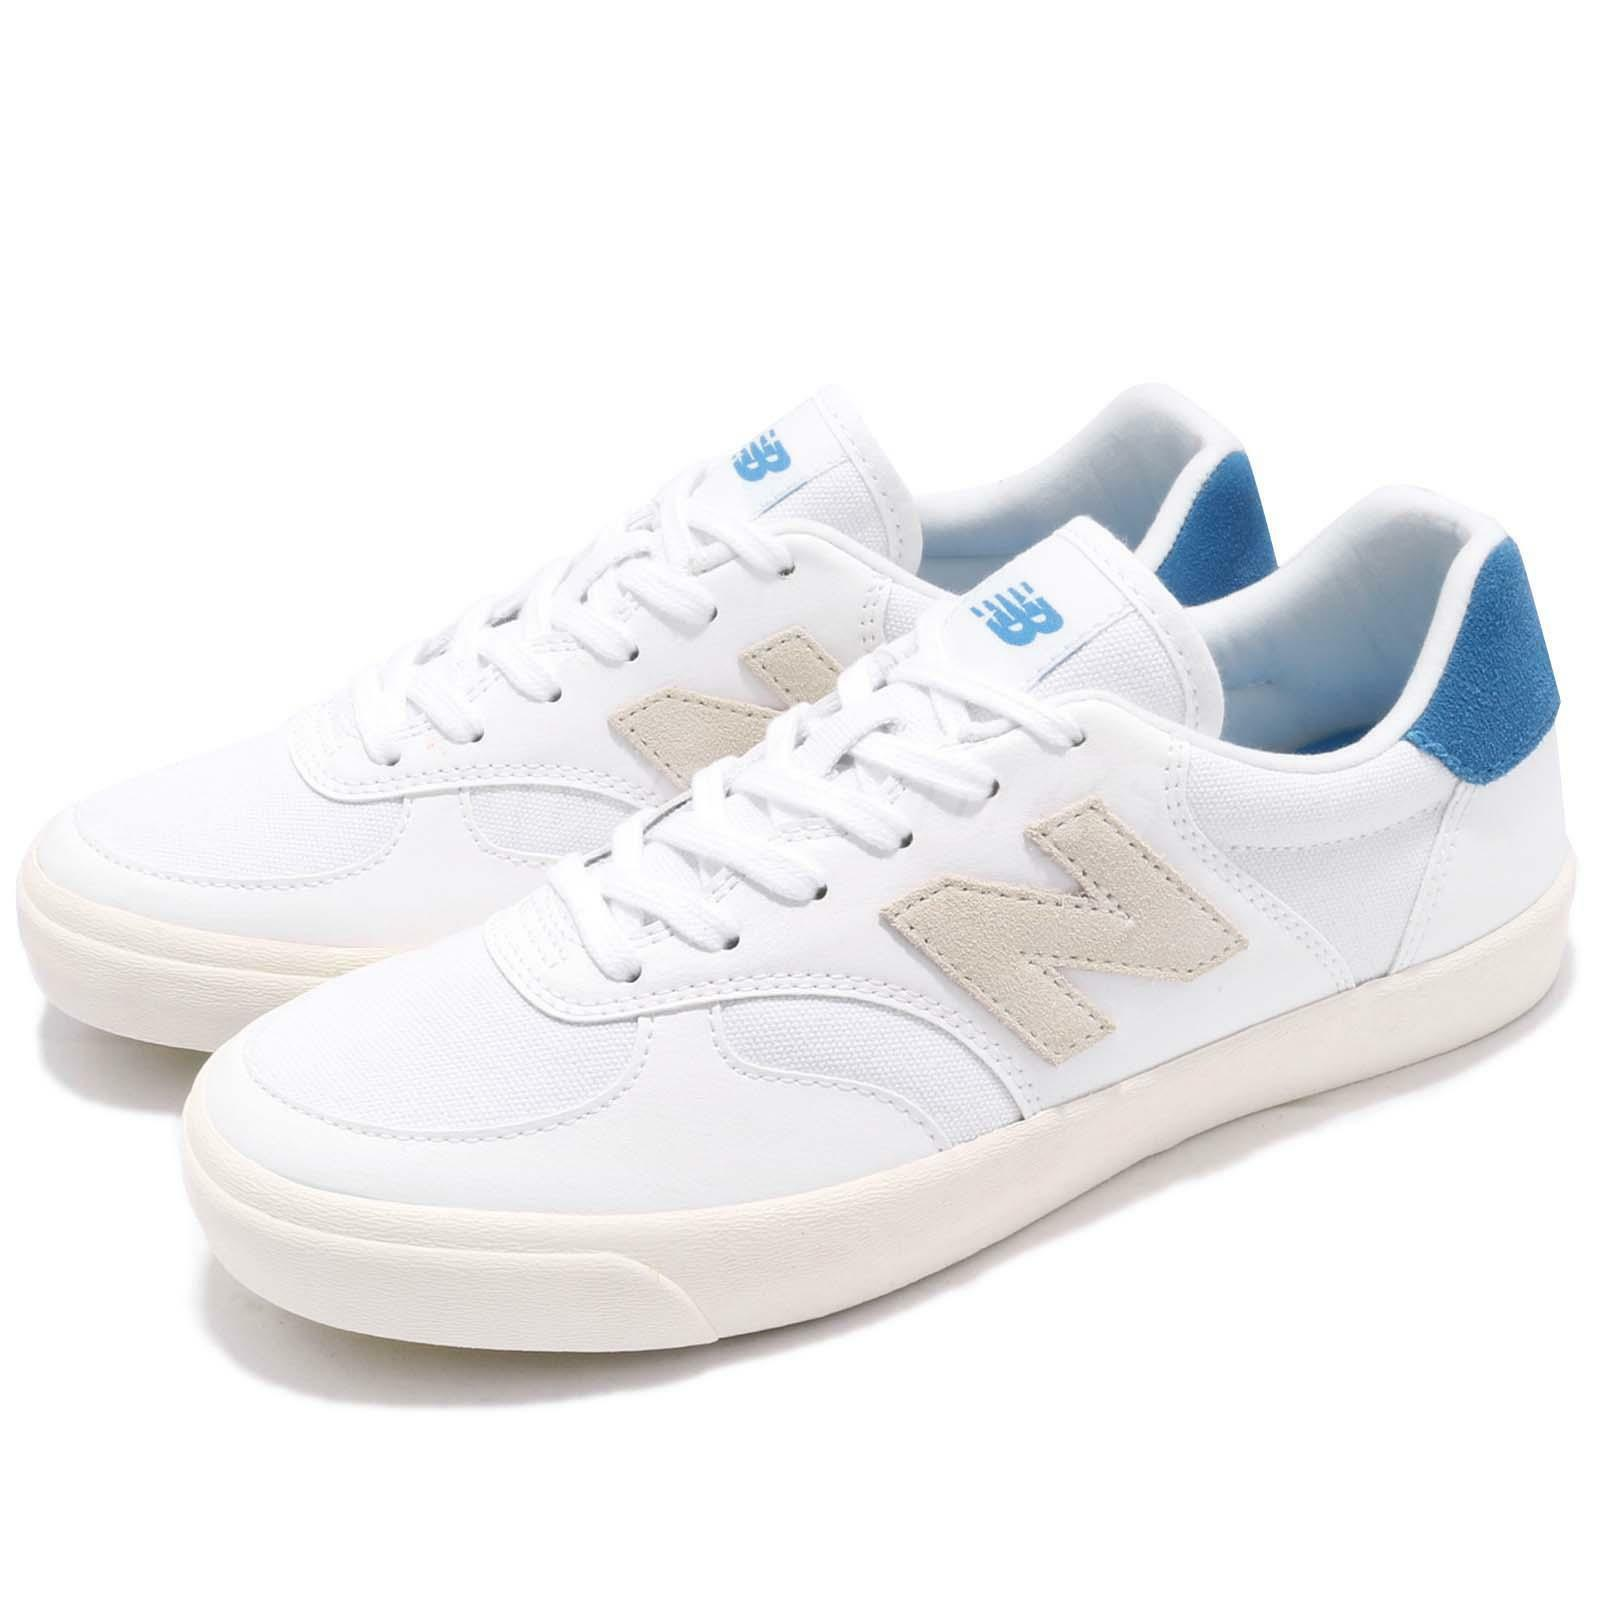 New Balance CRT300XA D Court 300 White Beige bluee Men shoes Sneakers CRT300XAD